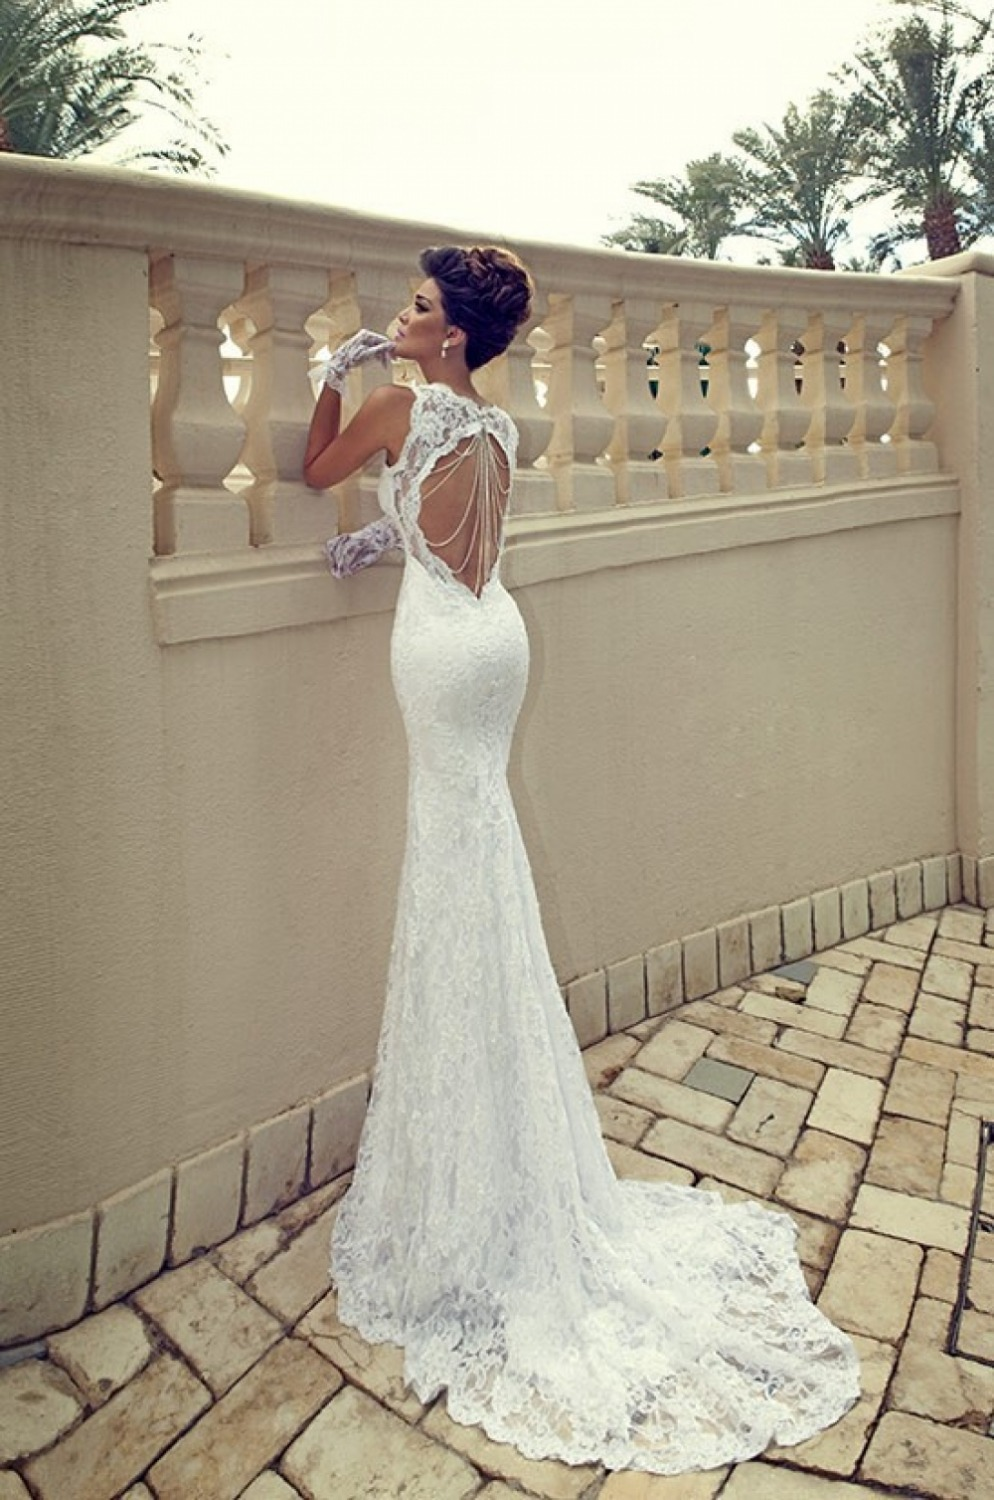 Hot Sale Galia Lahav Vintage Mermaid Sweetheart Backless White Sheer 2014 Lace Wedding Dresses Court Train Bridal Gowns In From Weddings